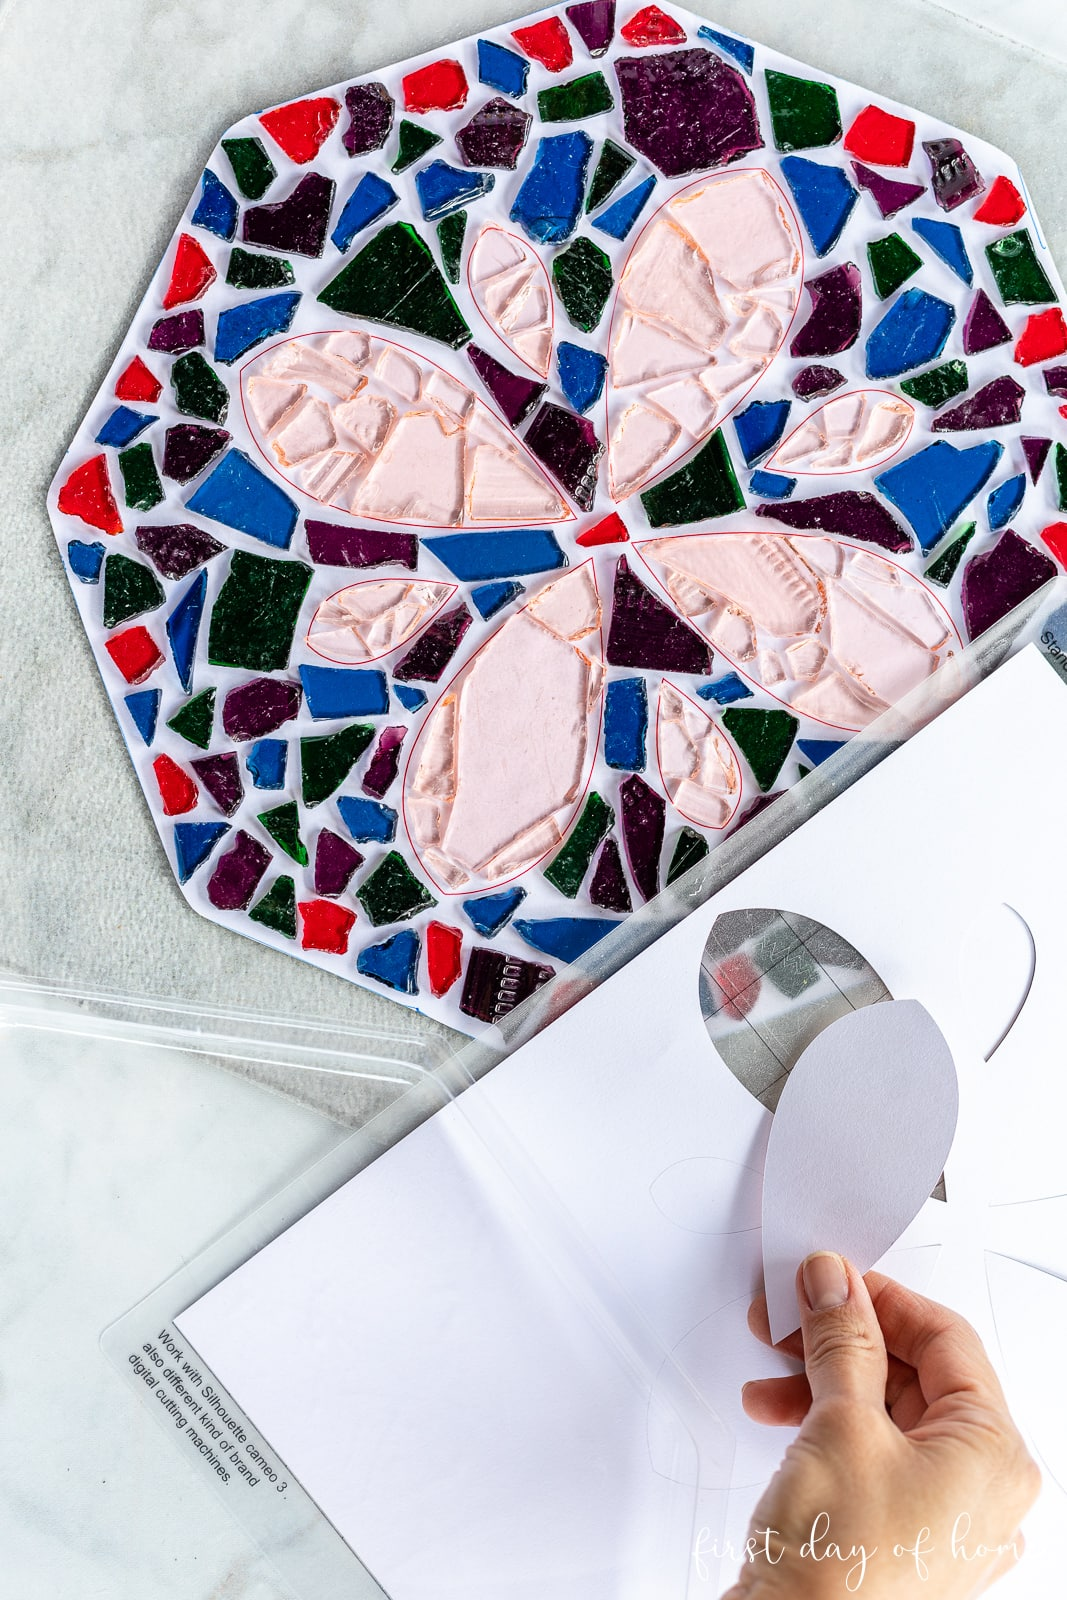 Mosaic tiles in a flower pattern and cut paper pattern